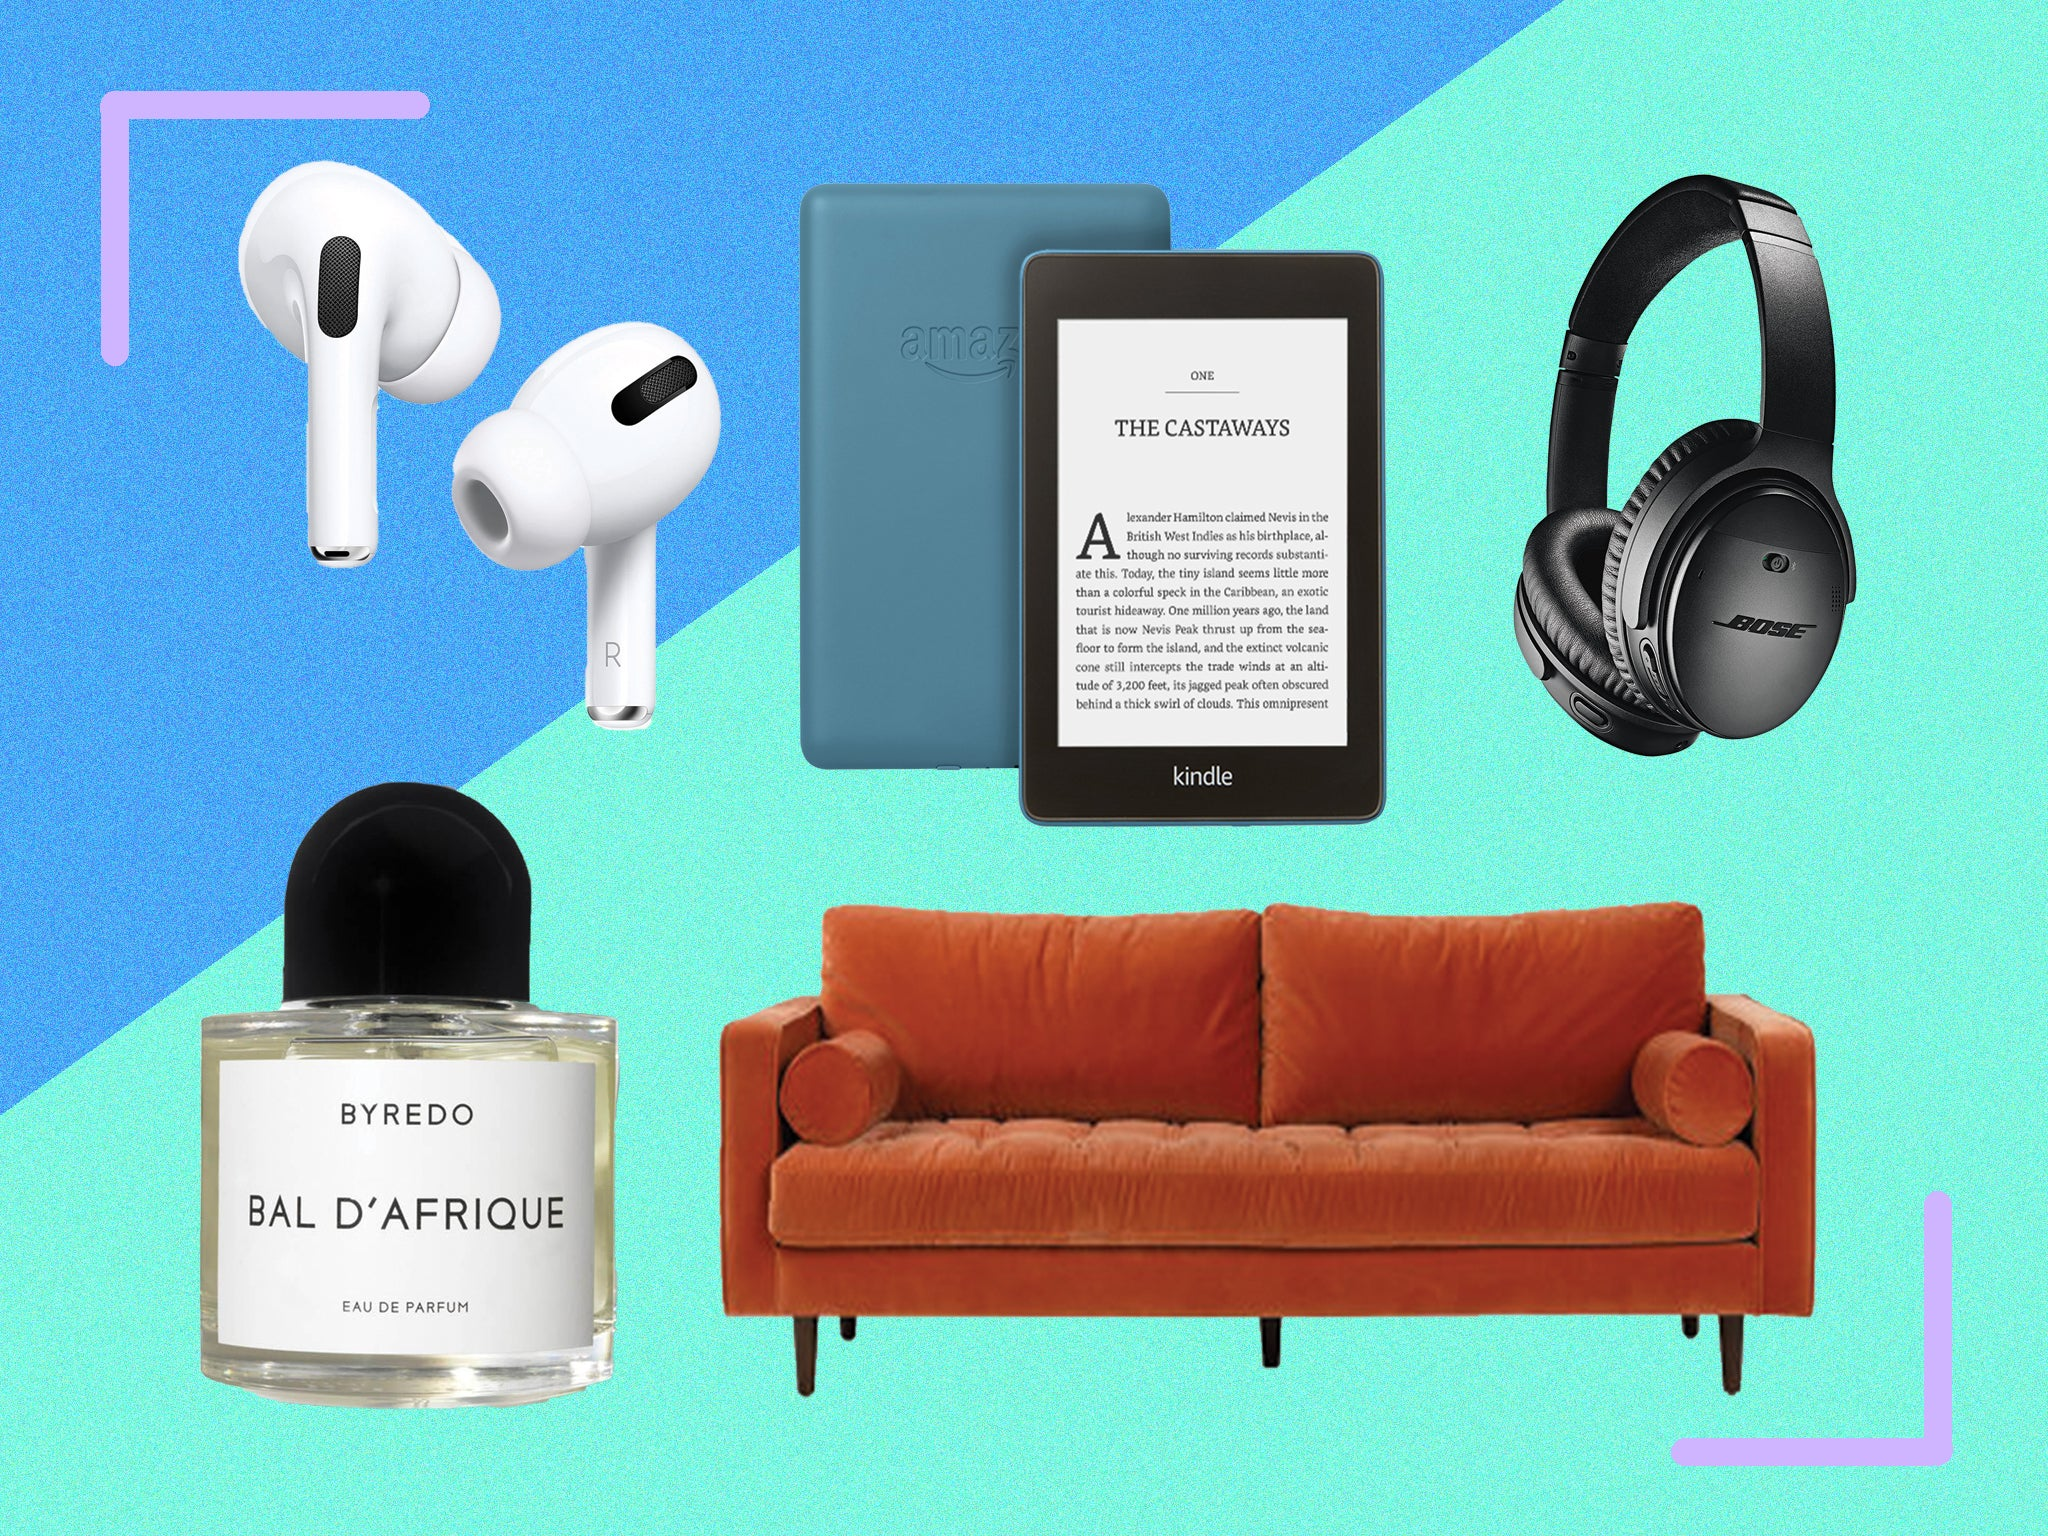 We've found the best Black Friday deals from Currys, Nintendo, Boots and more